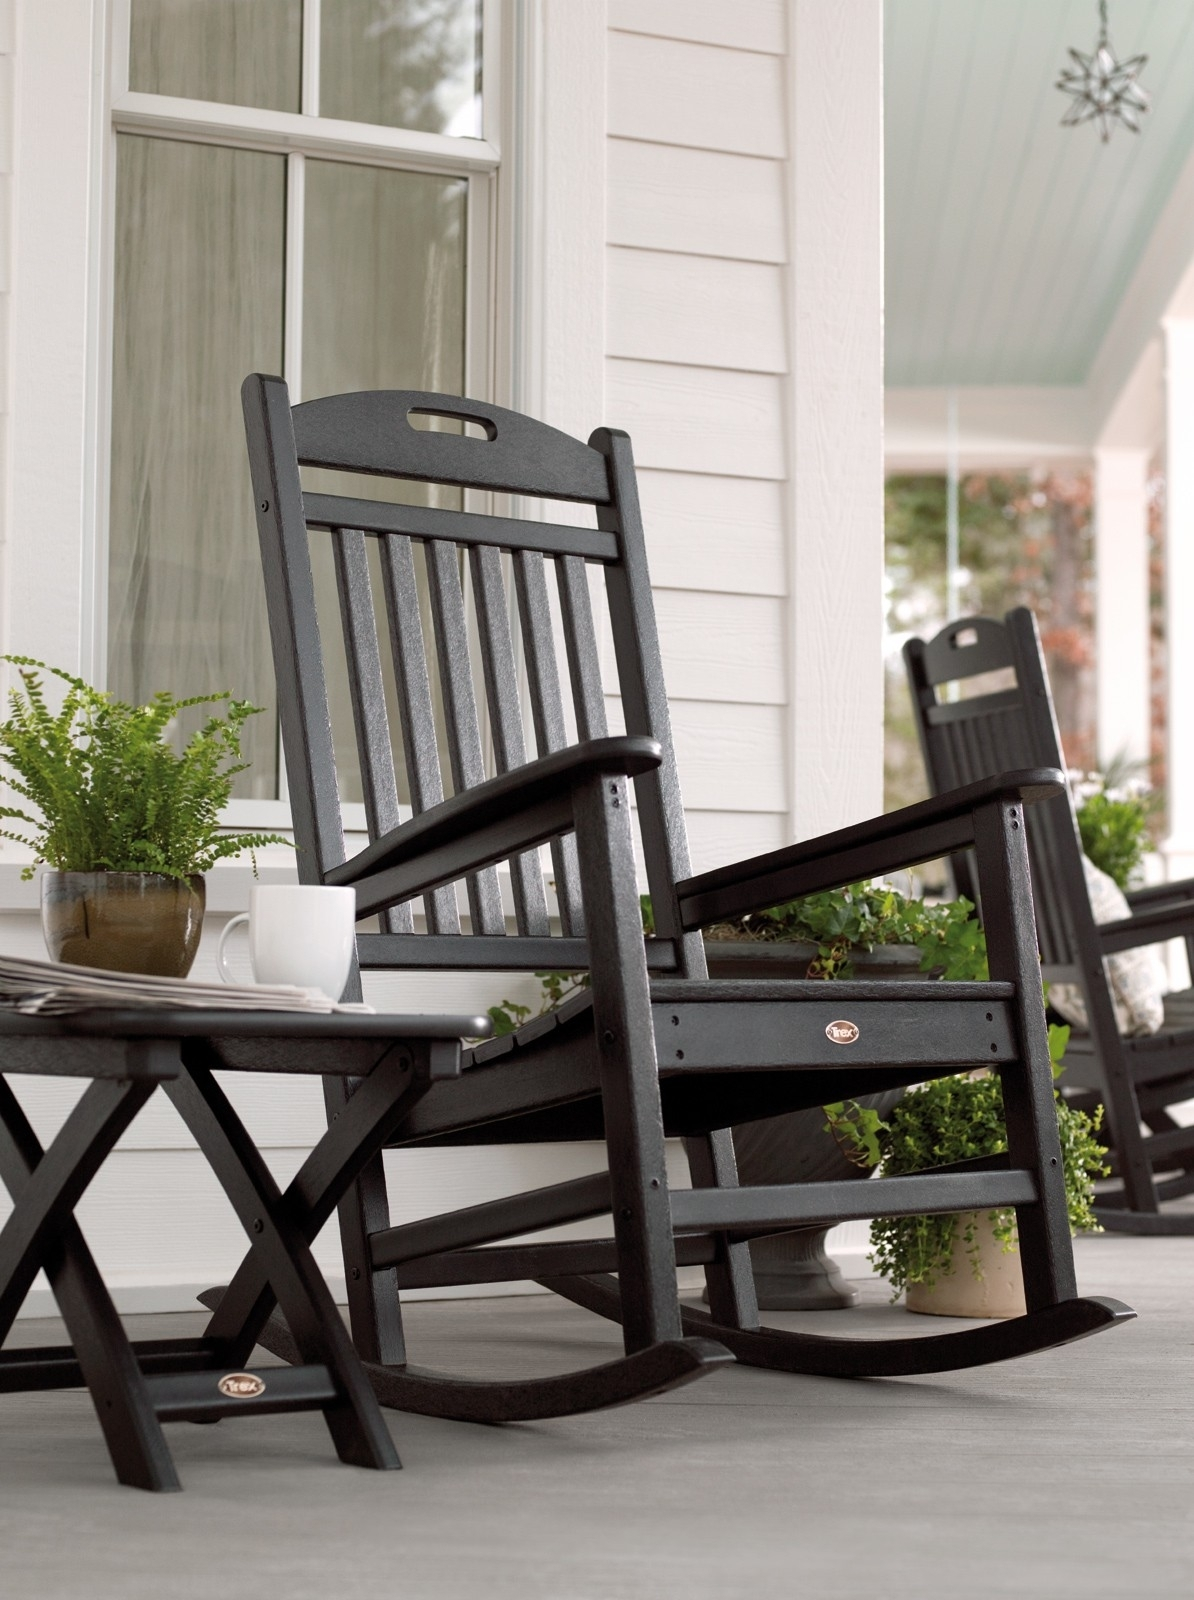 Popular Photo of Rocking Chairs For Outside